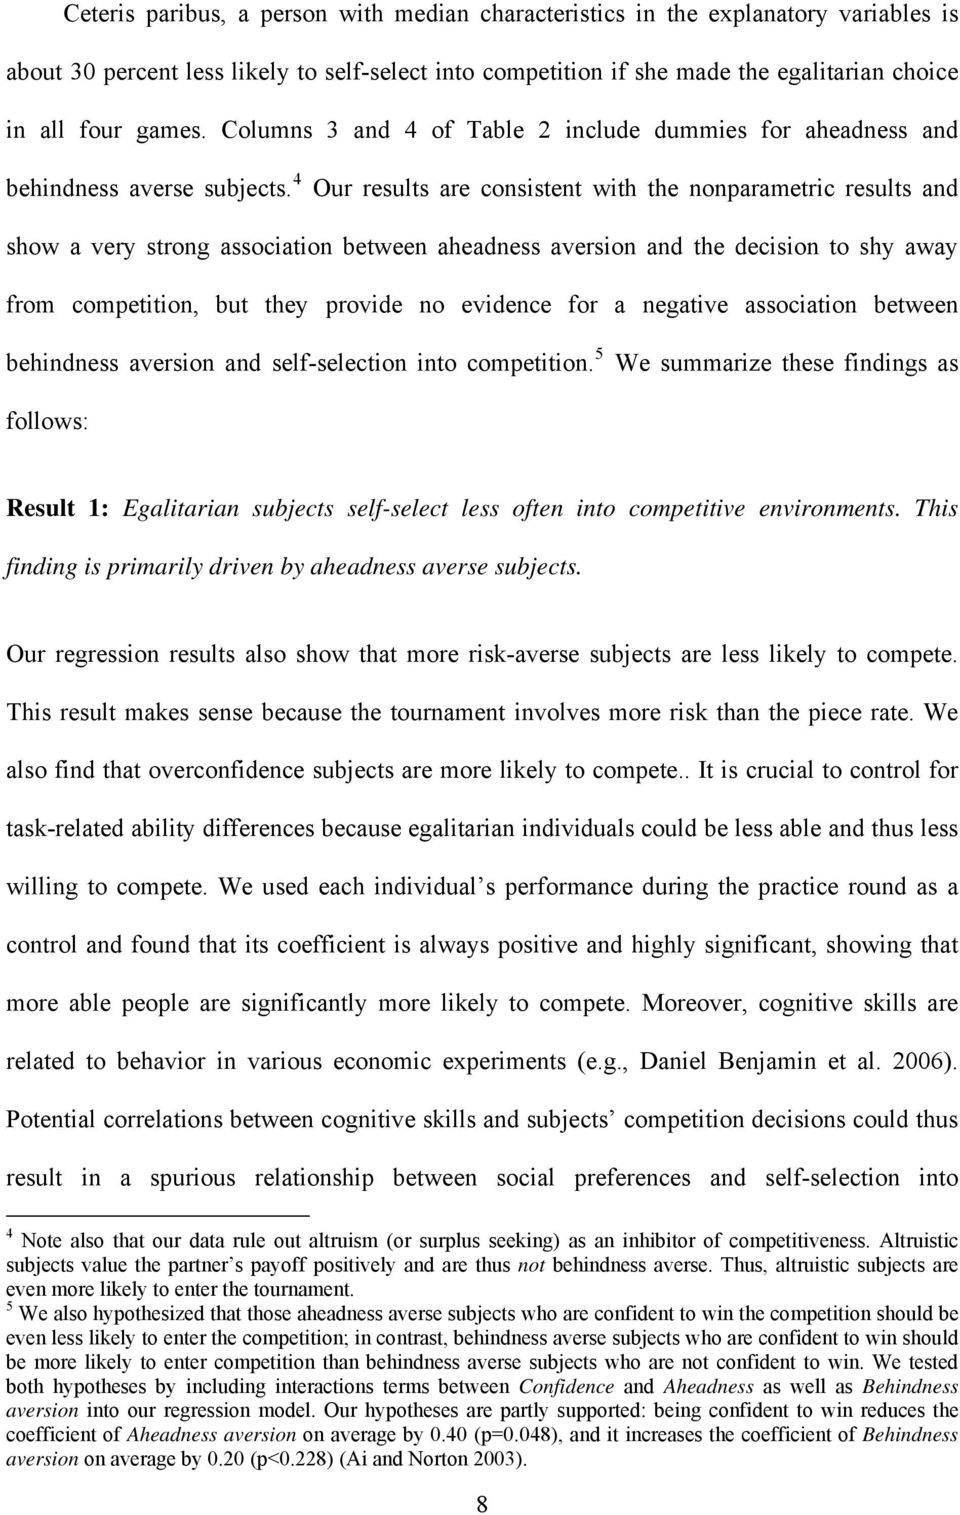 4 Our results are consistent with the nonparametric results and show a very strong association between aheadness aversion and the decision to shy away from competition, but they provide no evidence